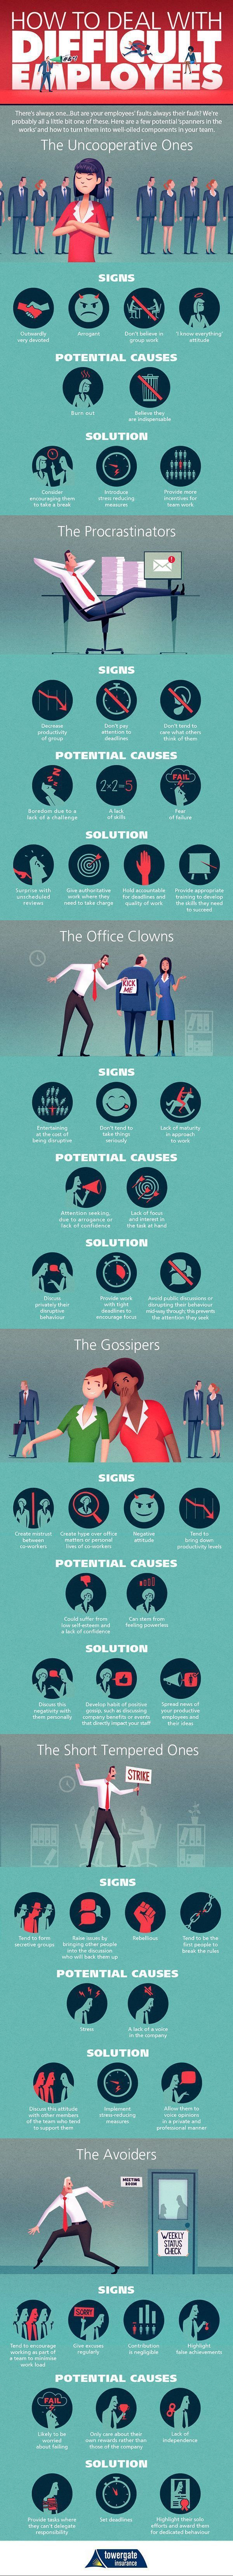 Infographic-infographic-infographic-6-Types-of-Toxic Infographic : infographic : infographic : 6 Types of Toxic Employees  And What to Do About The...